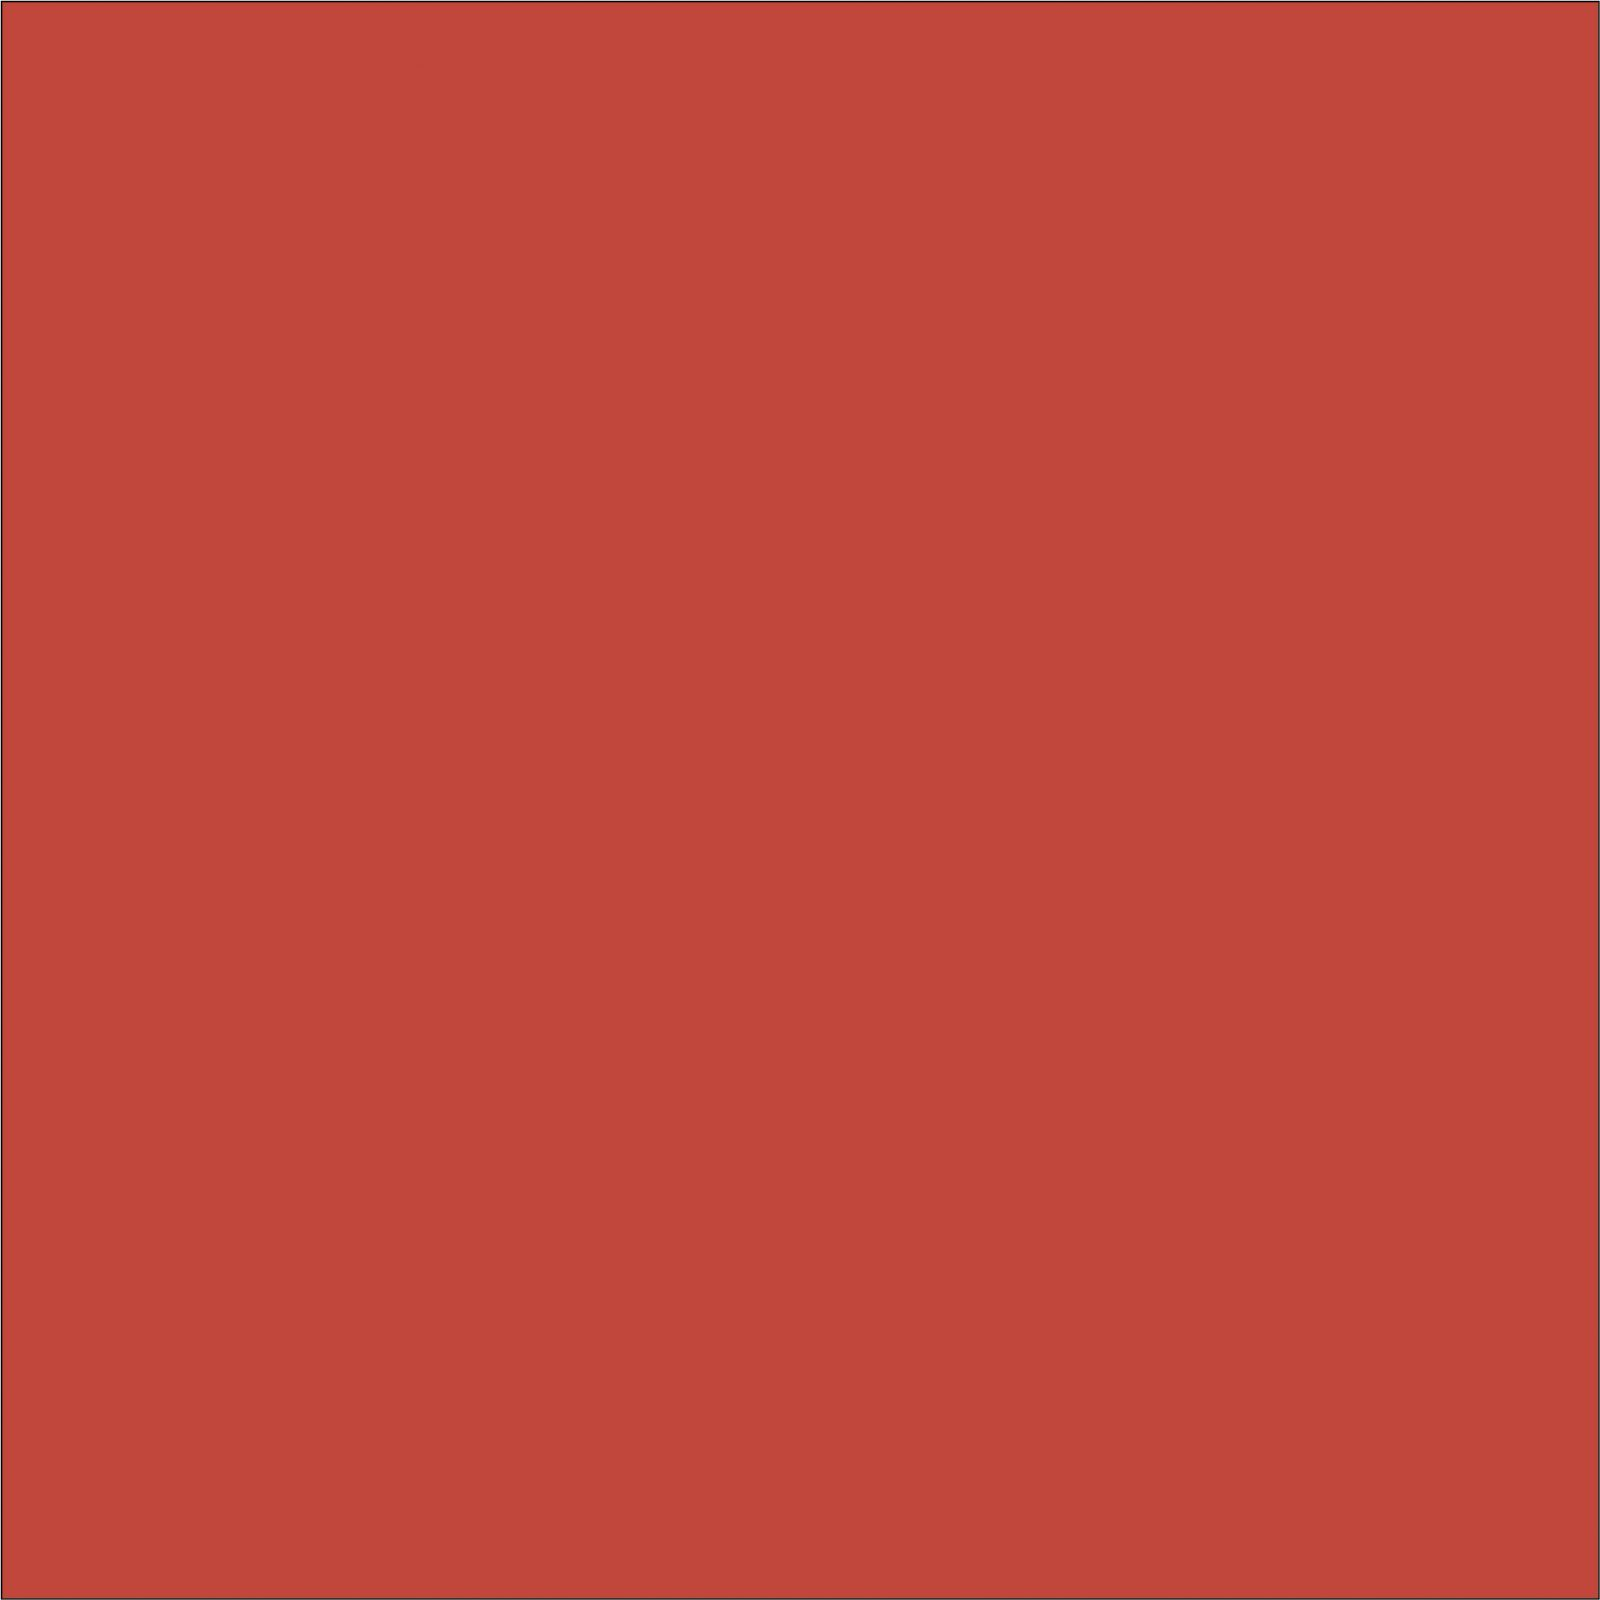 Colour swatch of Bright Red